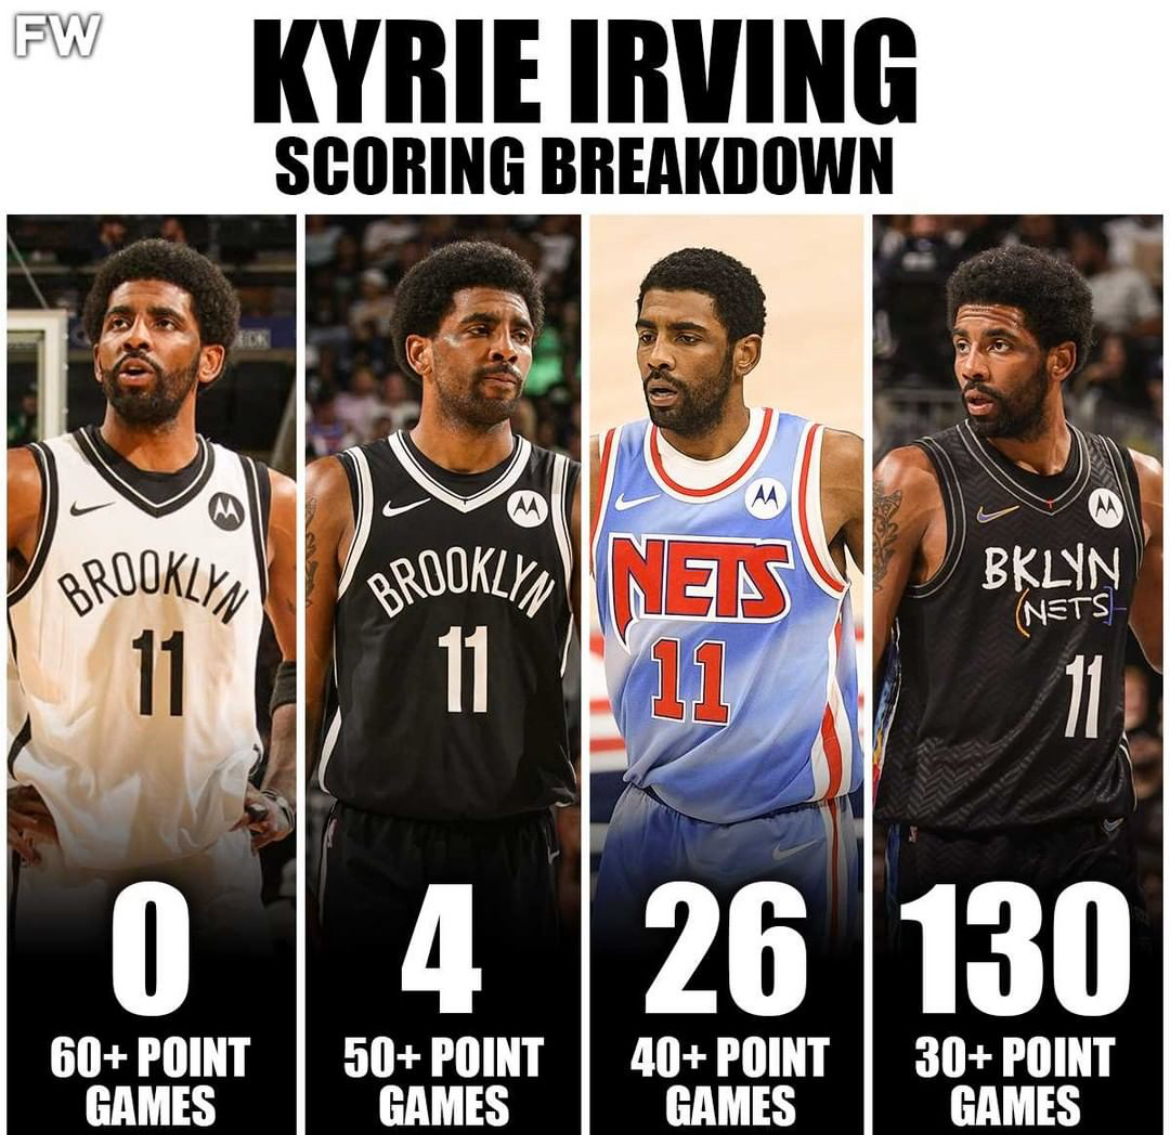 Think Kyrie ever goes for 60? #kyrie #nets #mvp #nba https://t.co/mpdO7jkyTO